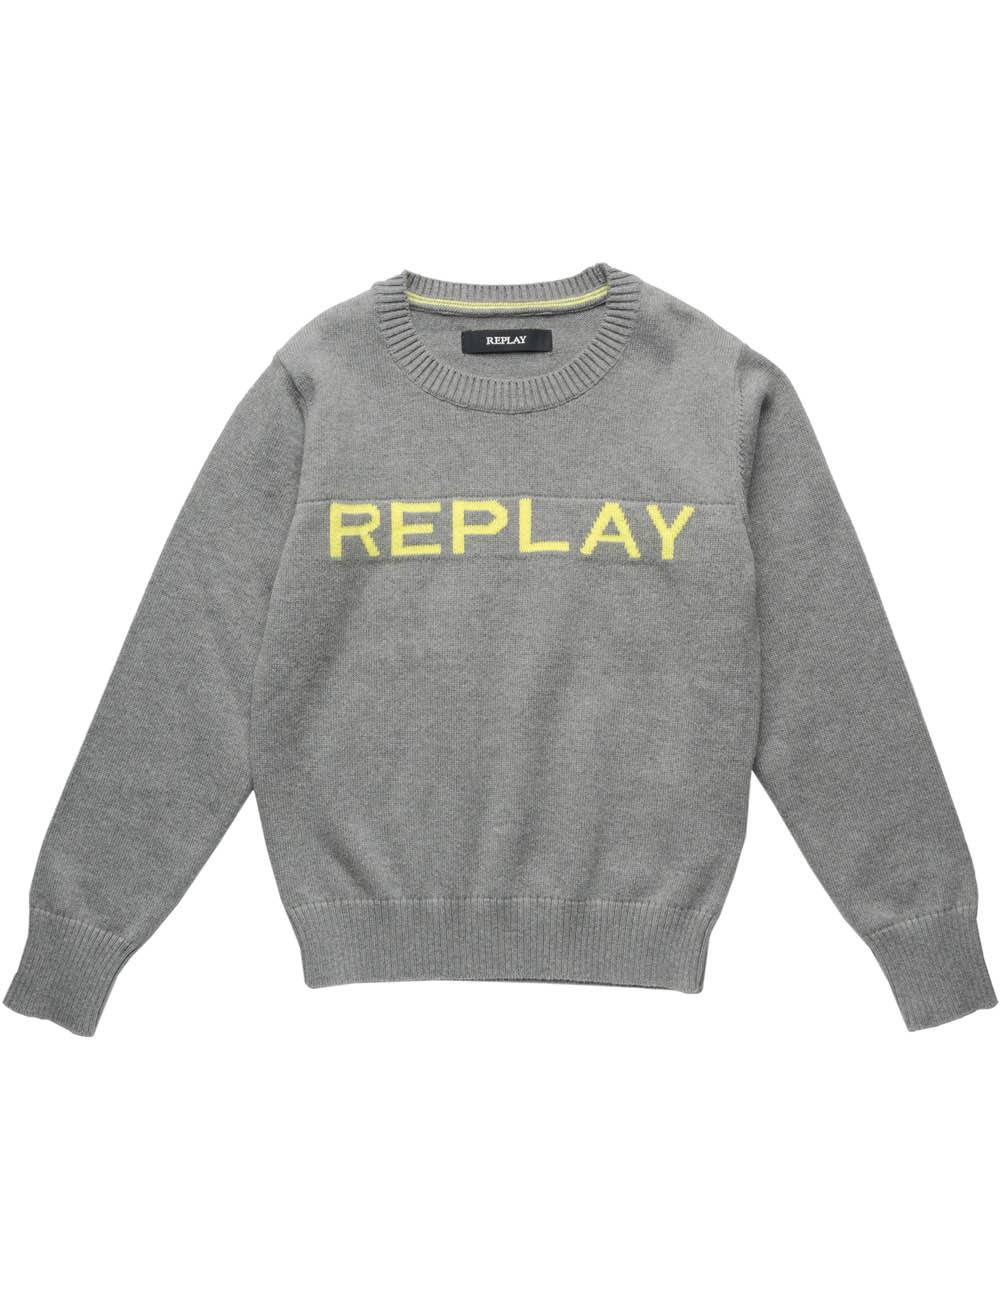 Replay logo knitted sweater - grey